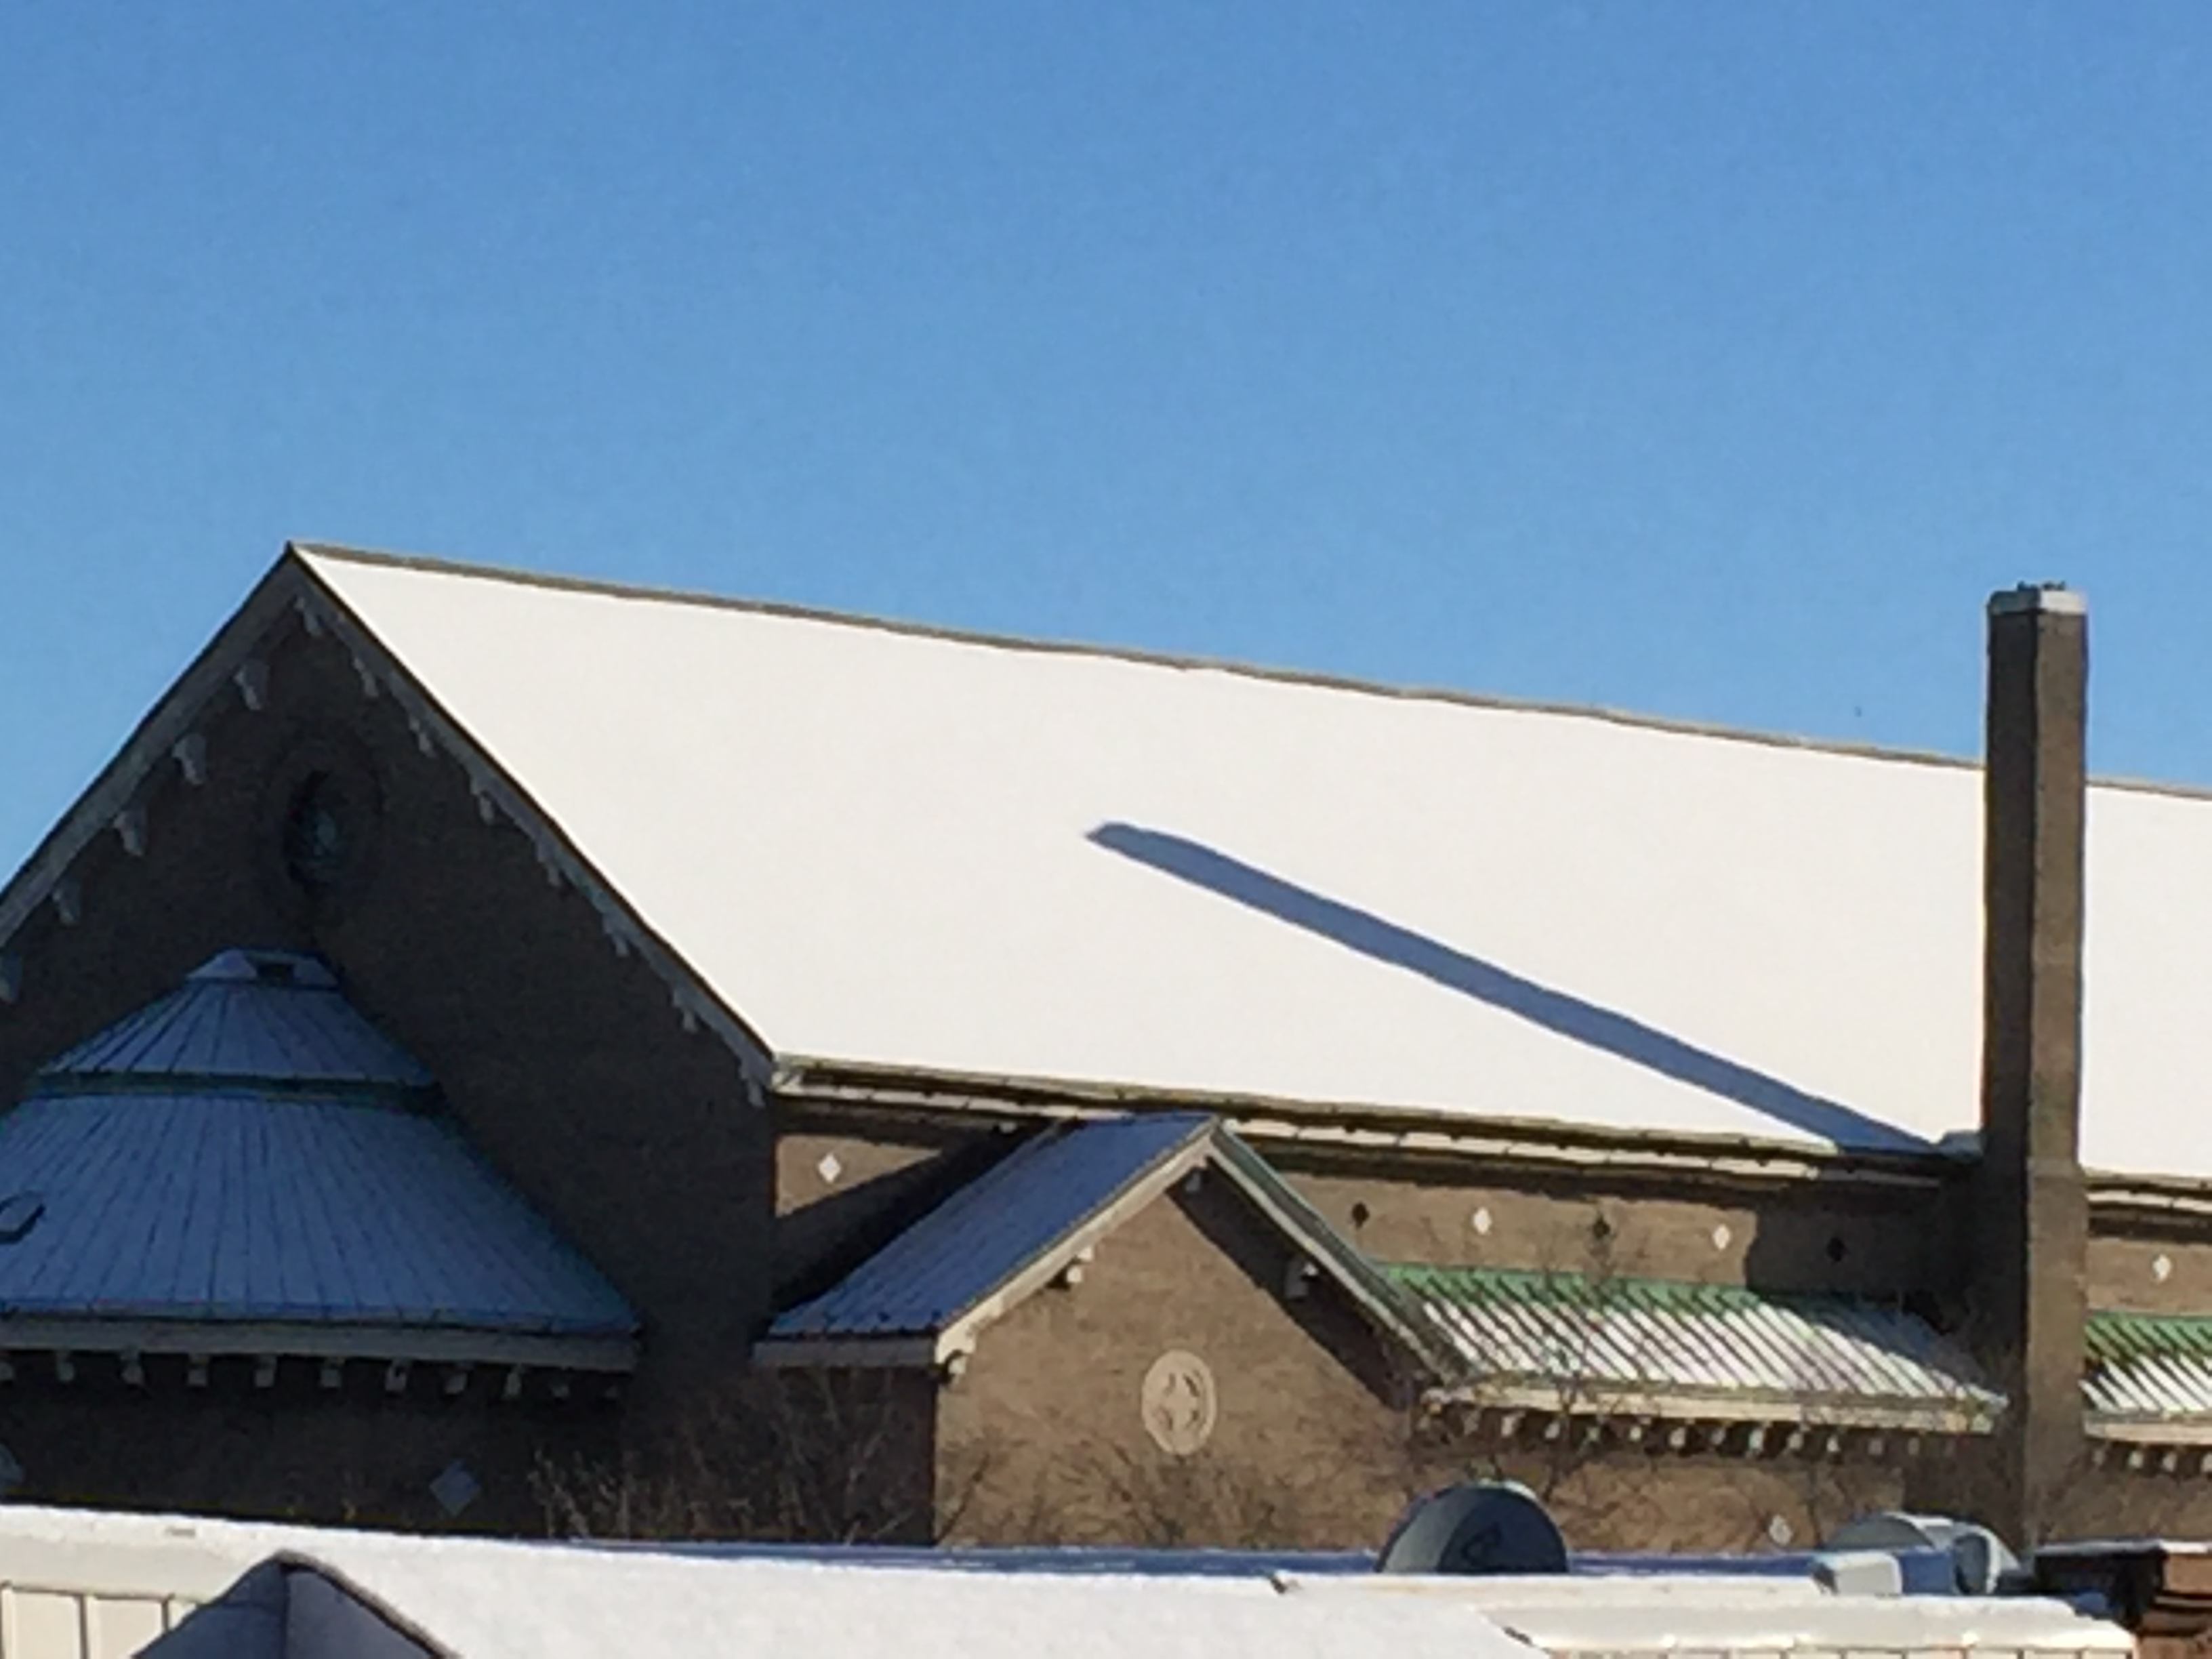 Shadow on snowy roof